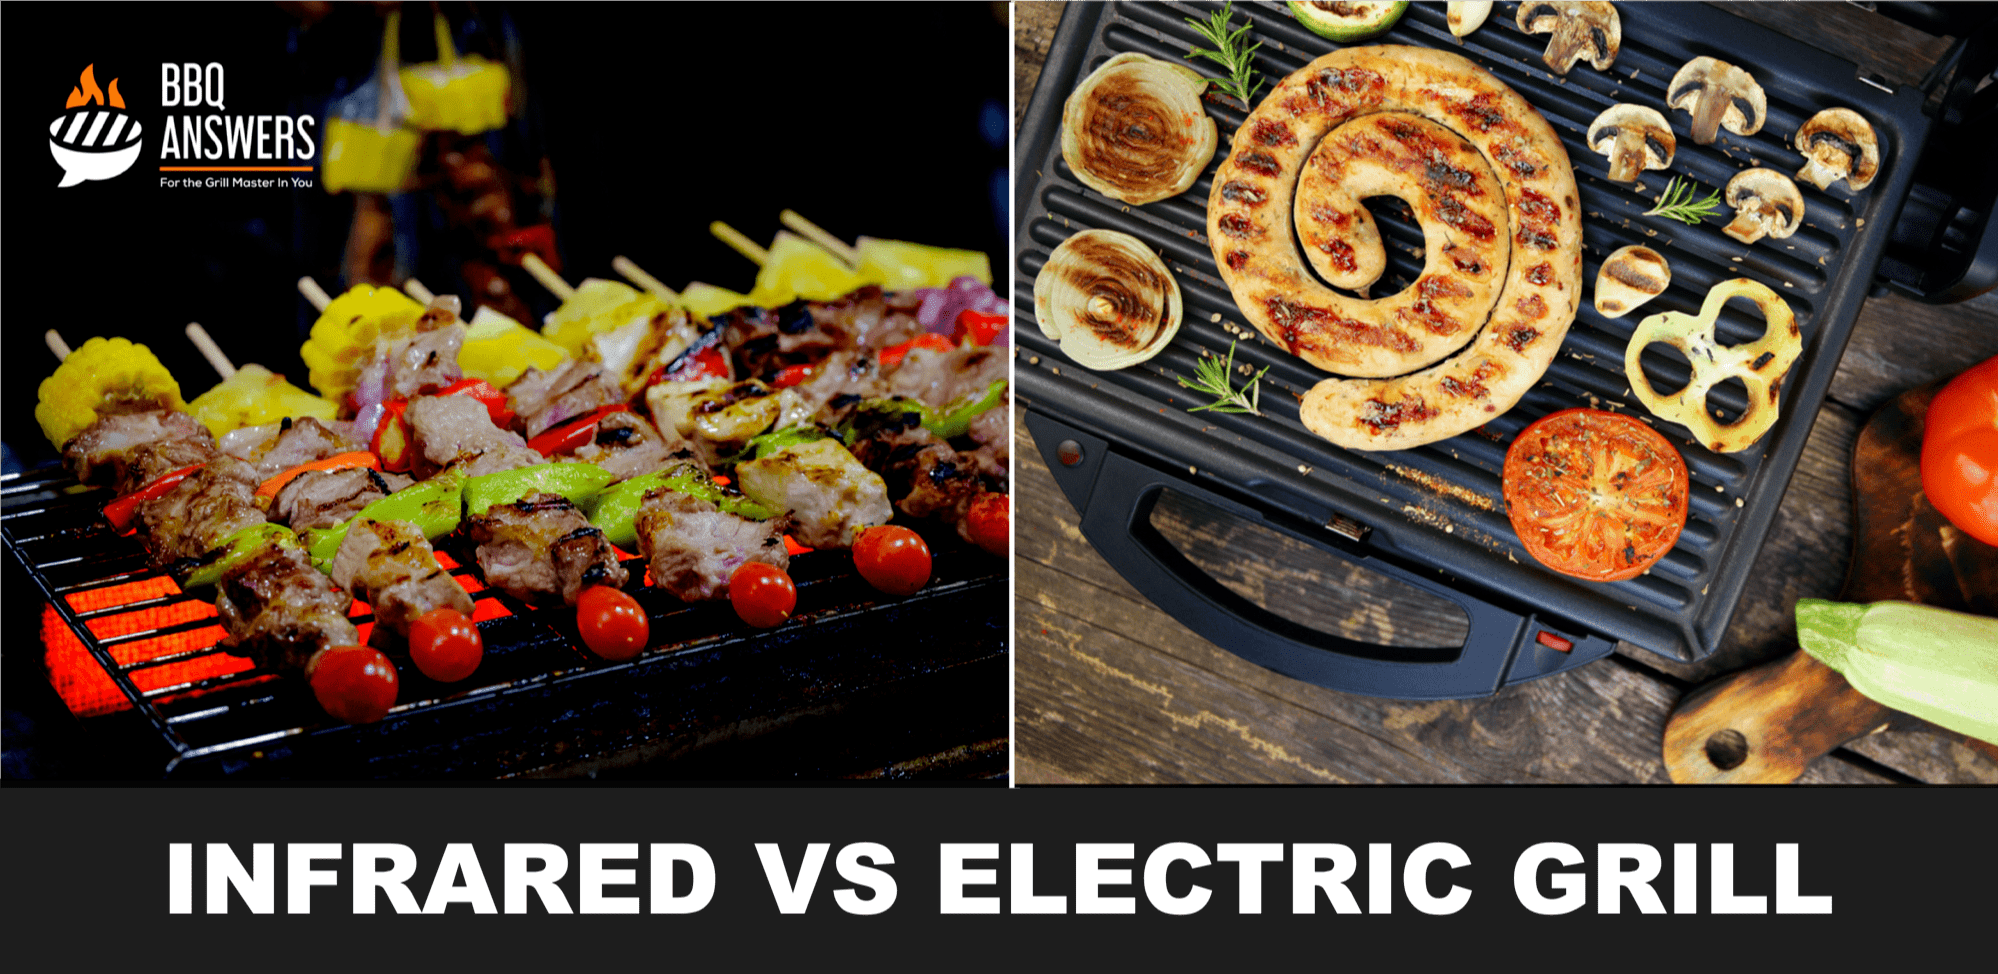 Infrared VS Electric Grill | BBQanswers